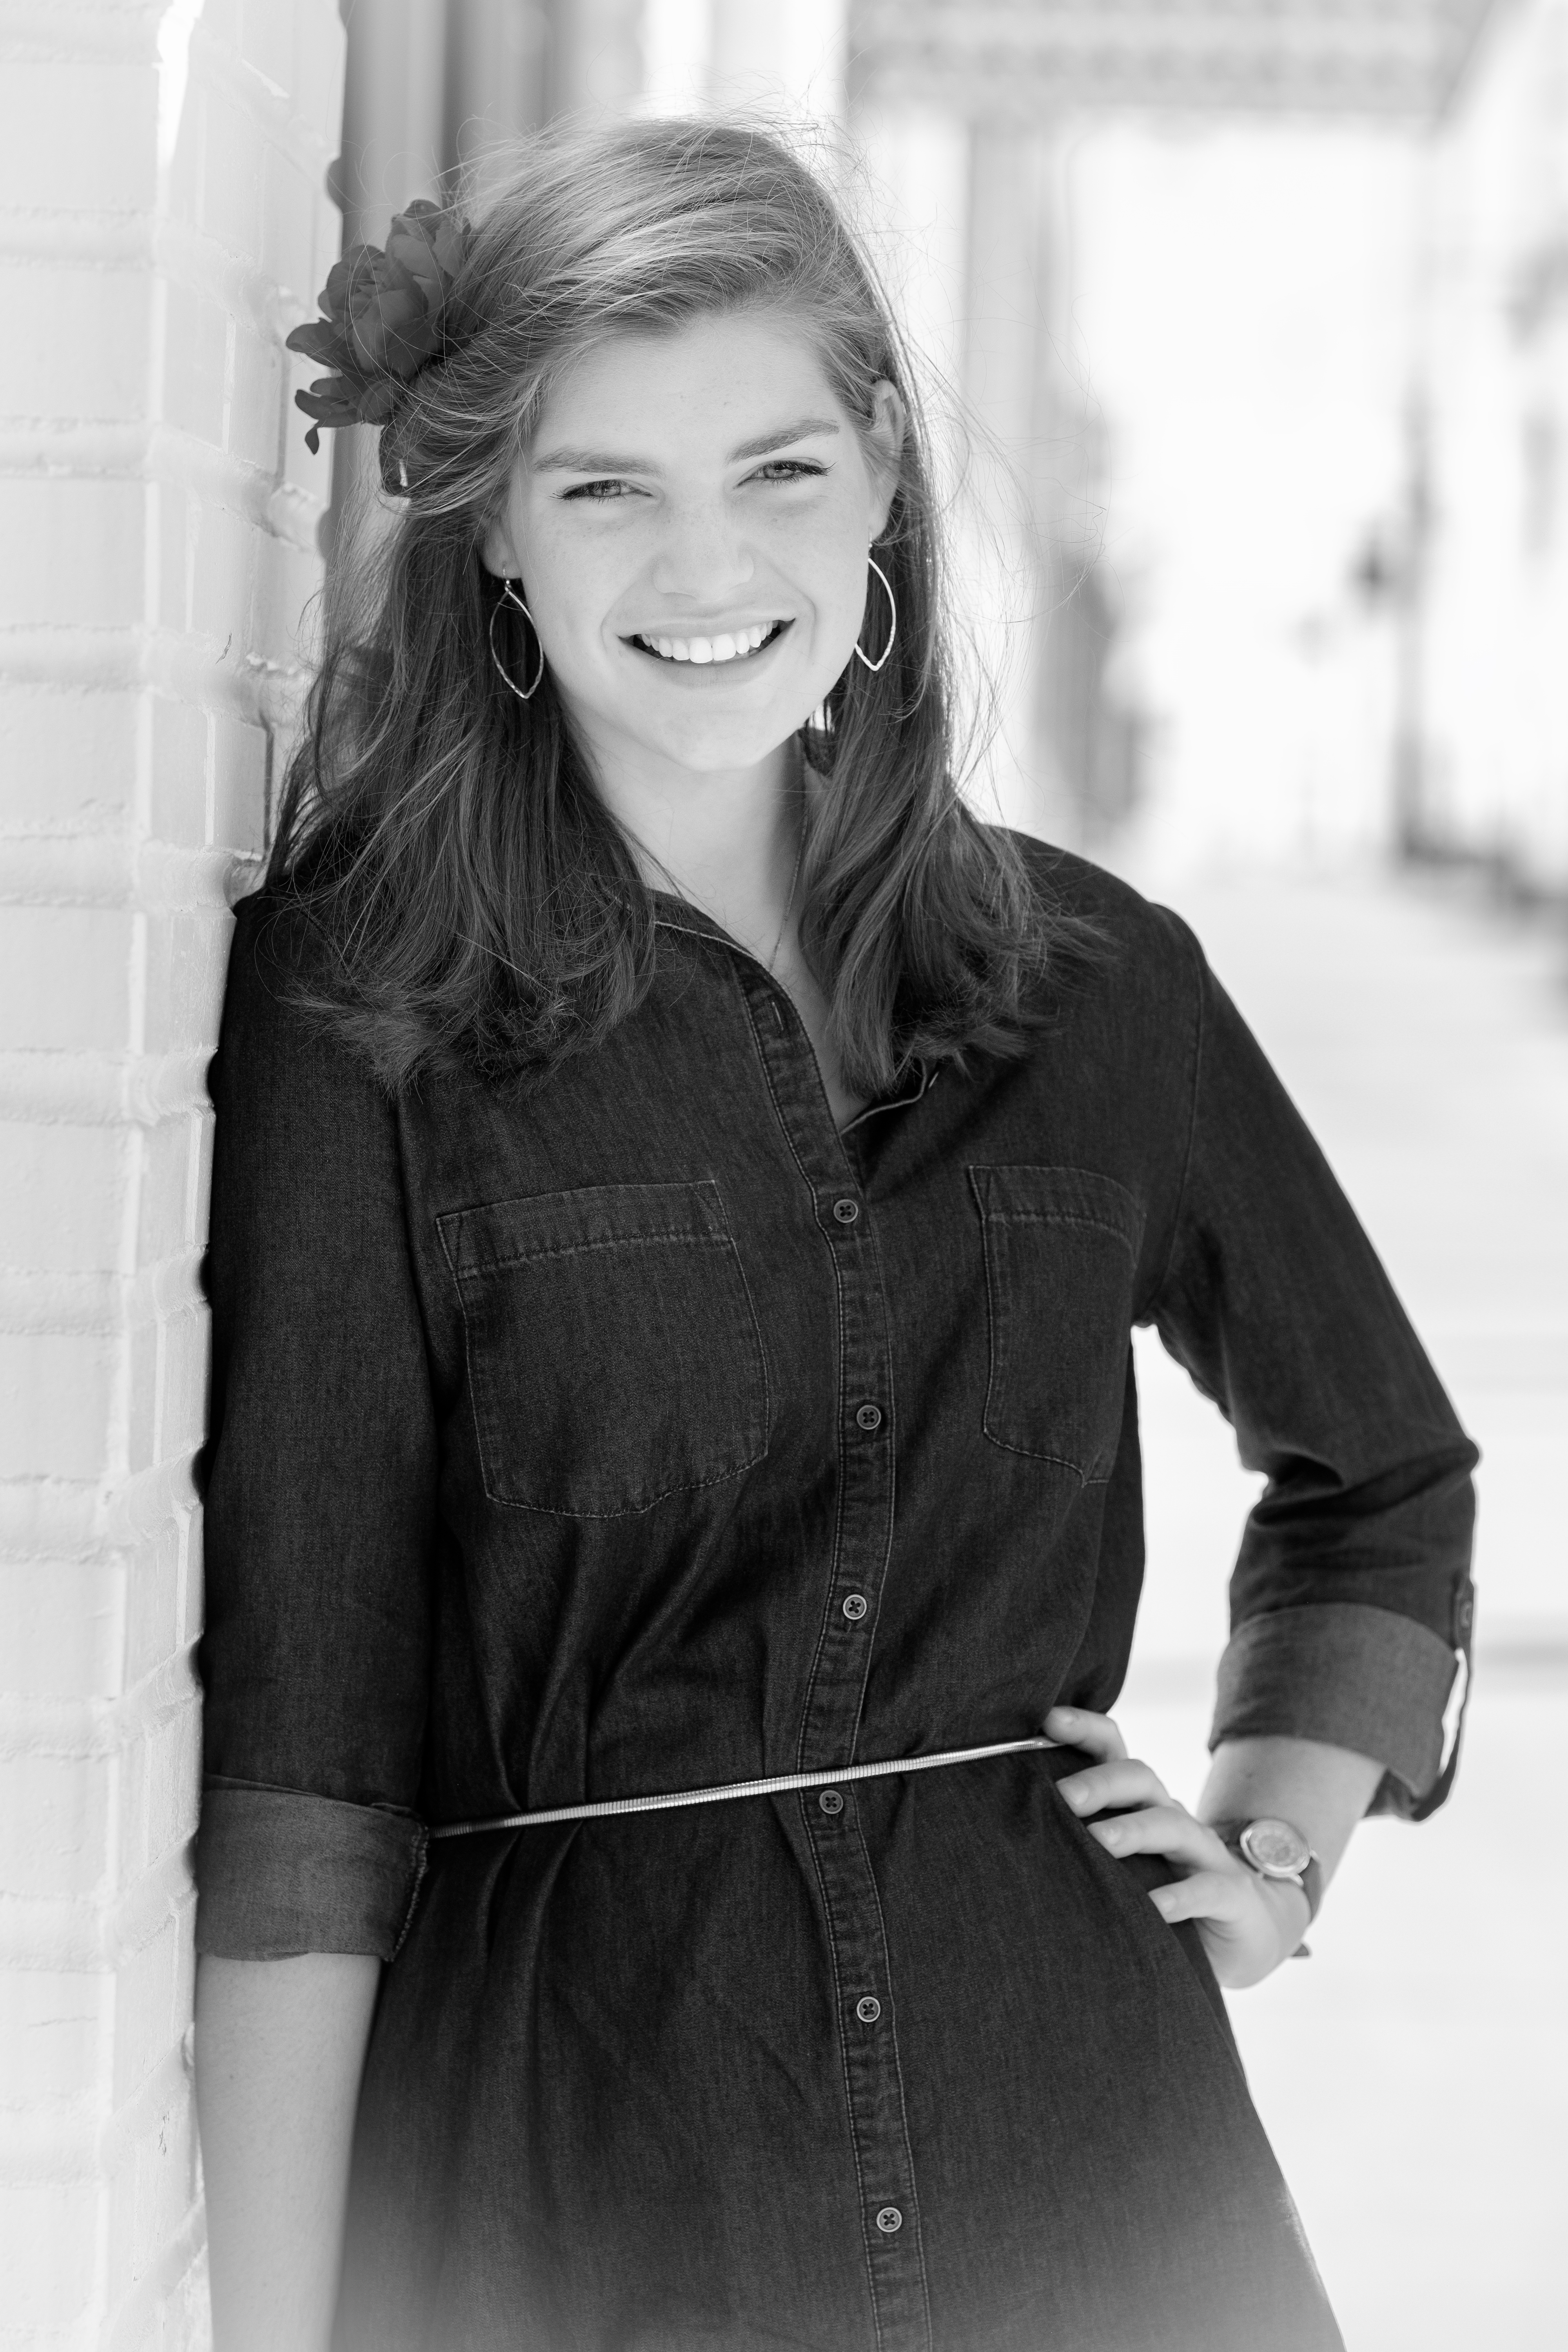 B&W portrait of smiling young lady